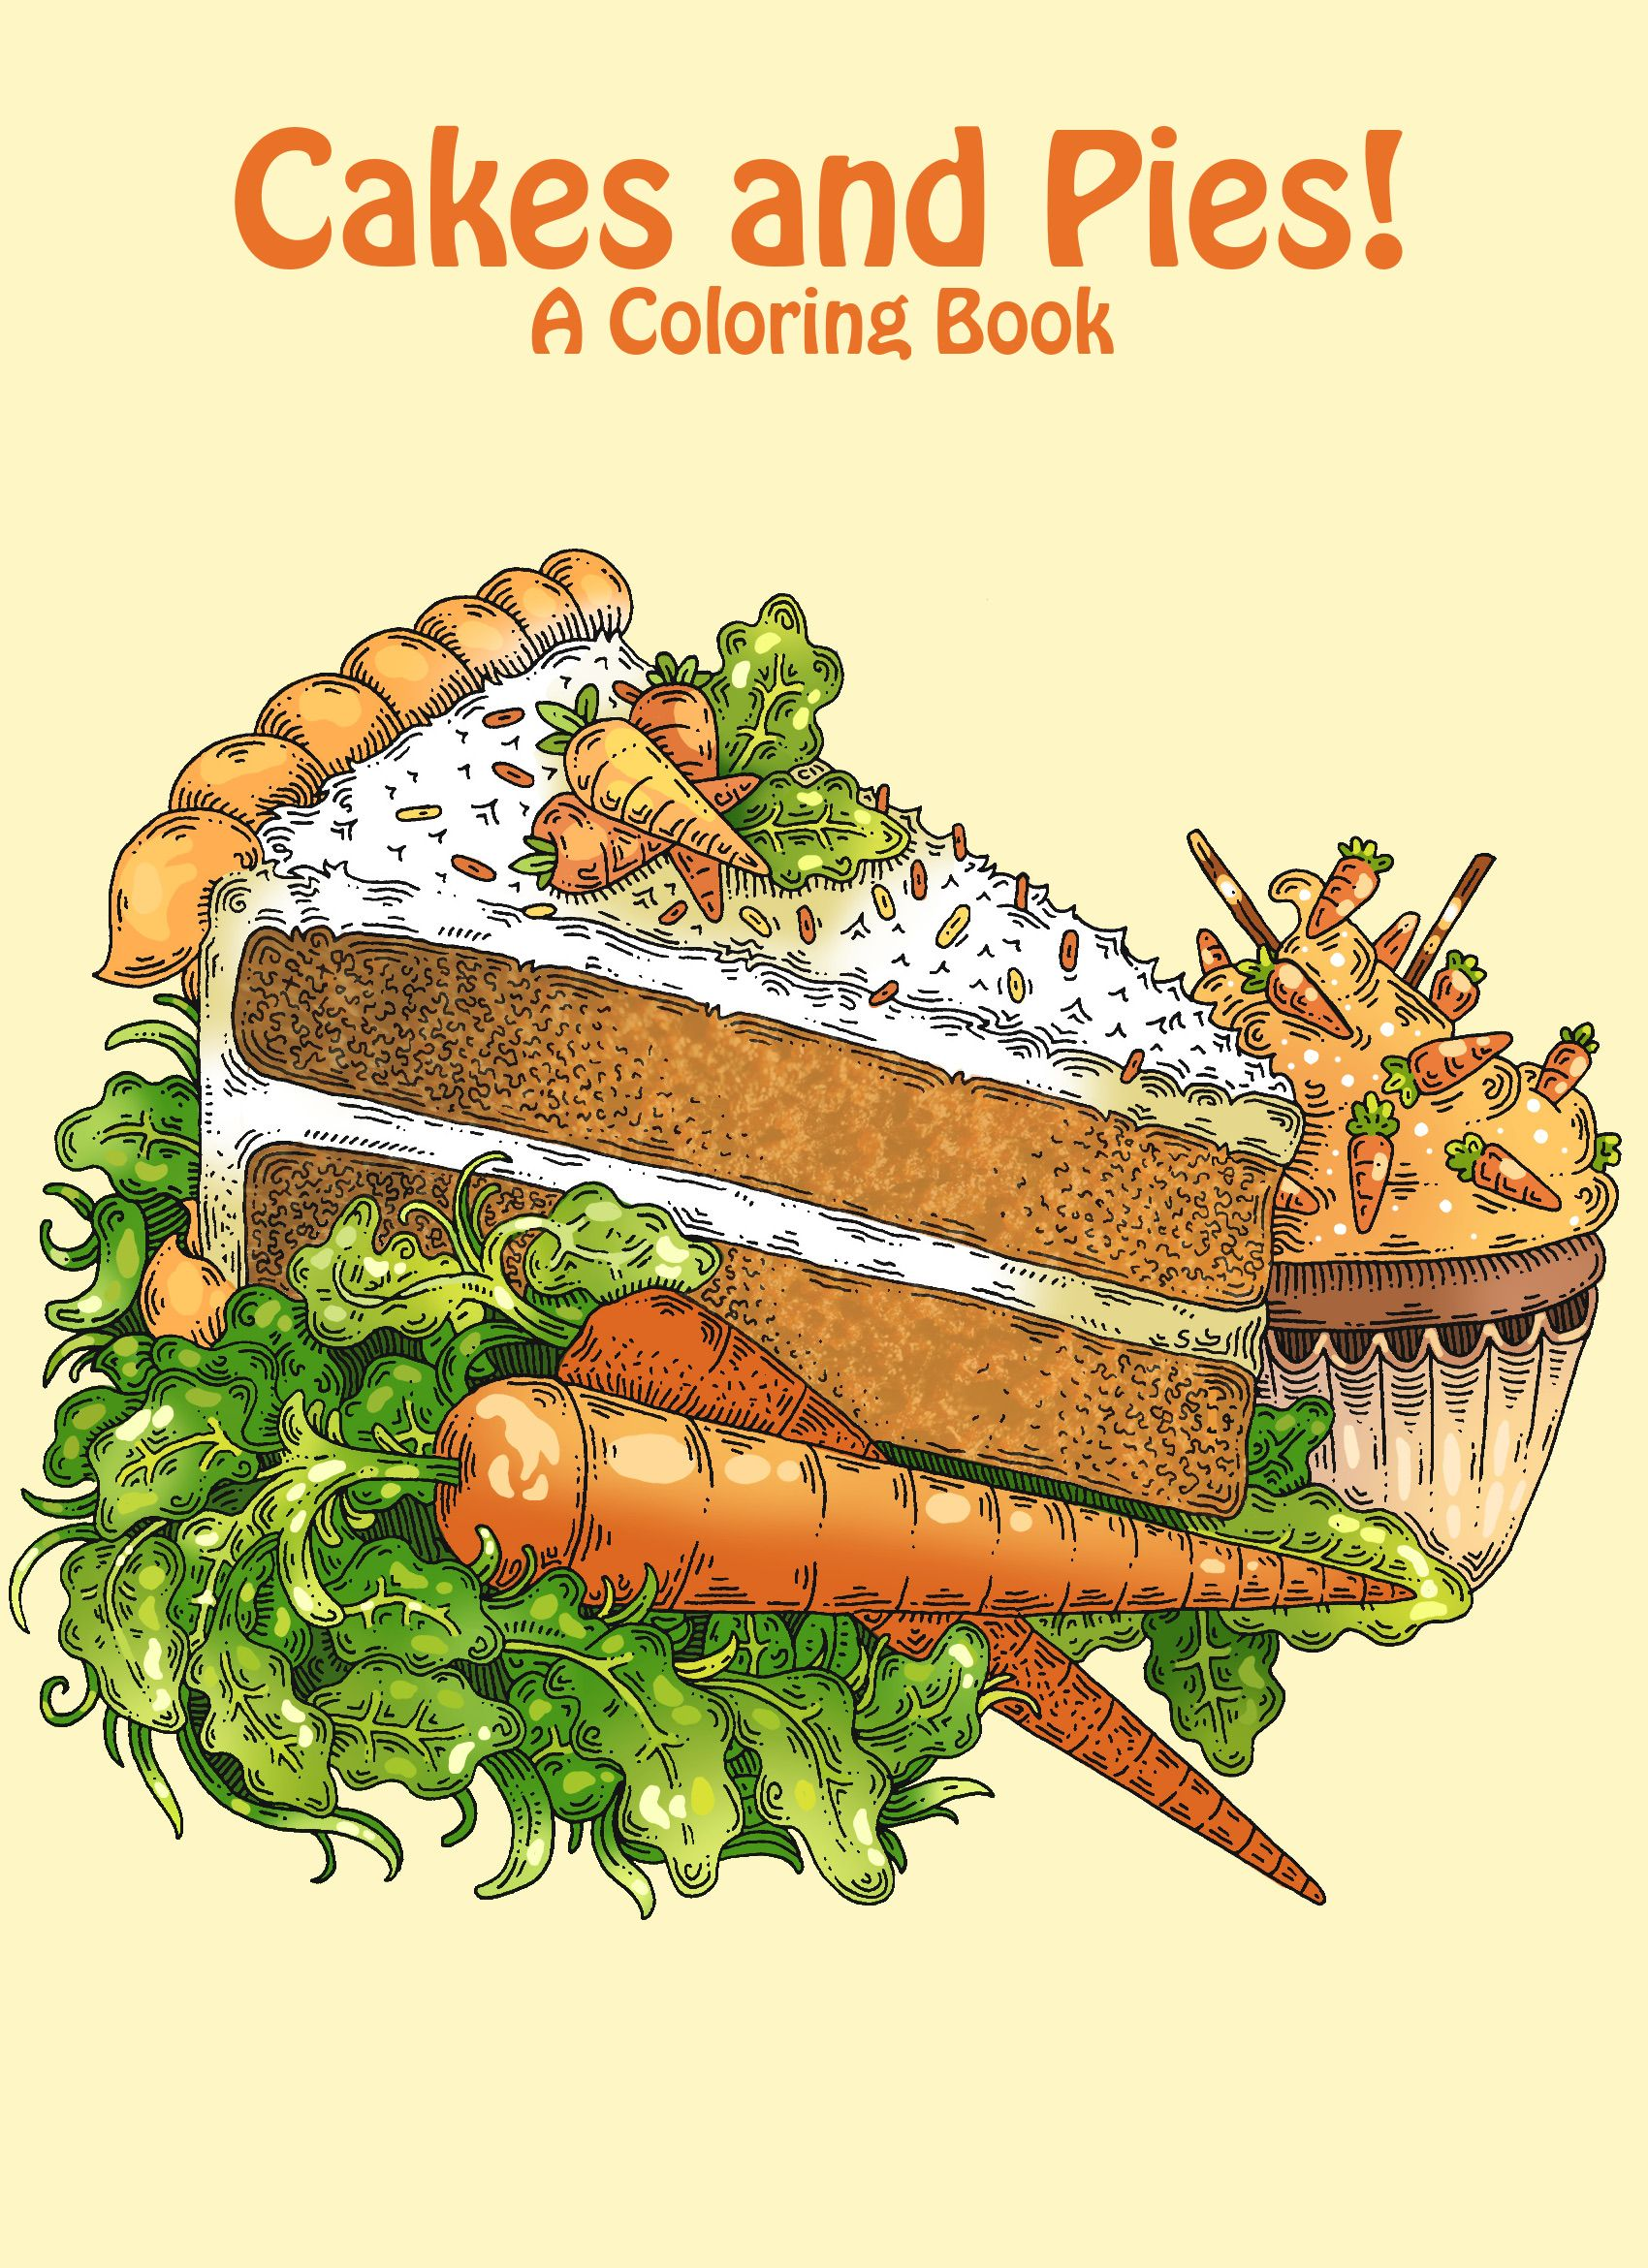 Cakes and Pies A Coloring Book Artwork by Janelle Dimmett